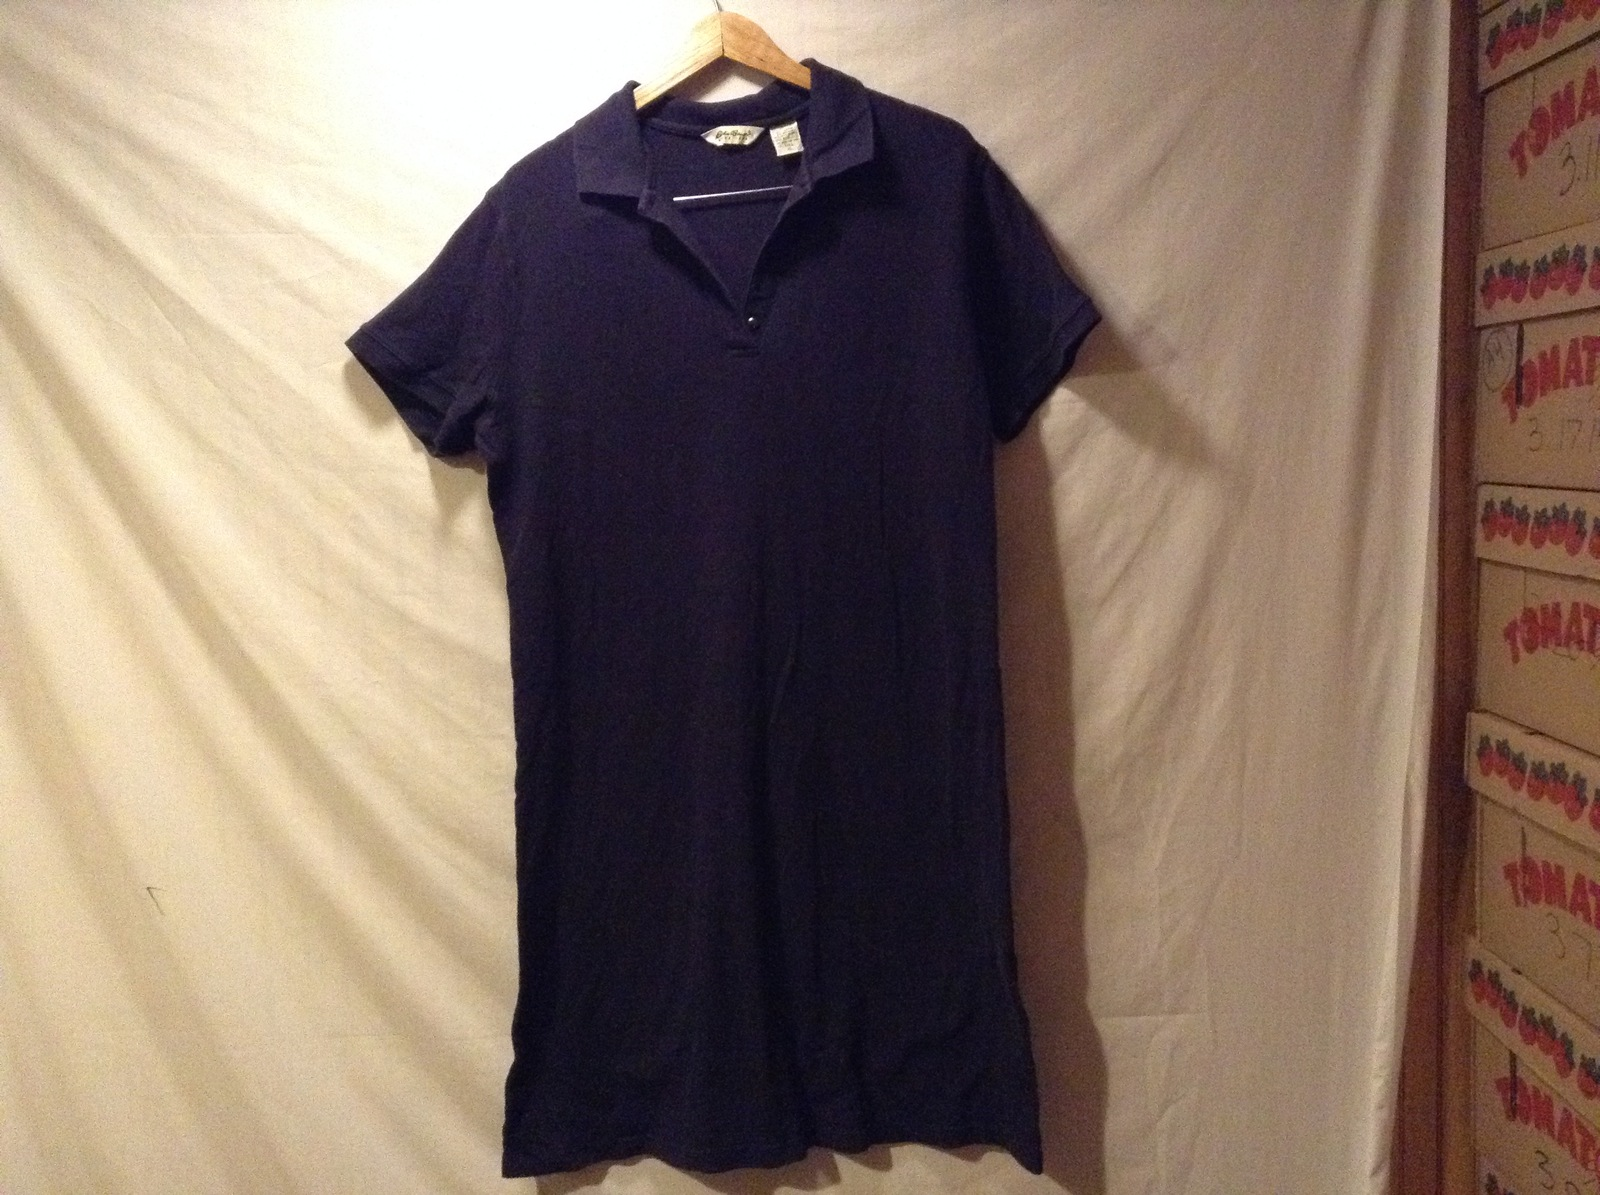 Eddie Bauer Mens Short sleeve Navy Blue Polo Shirt, Size XL